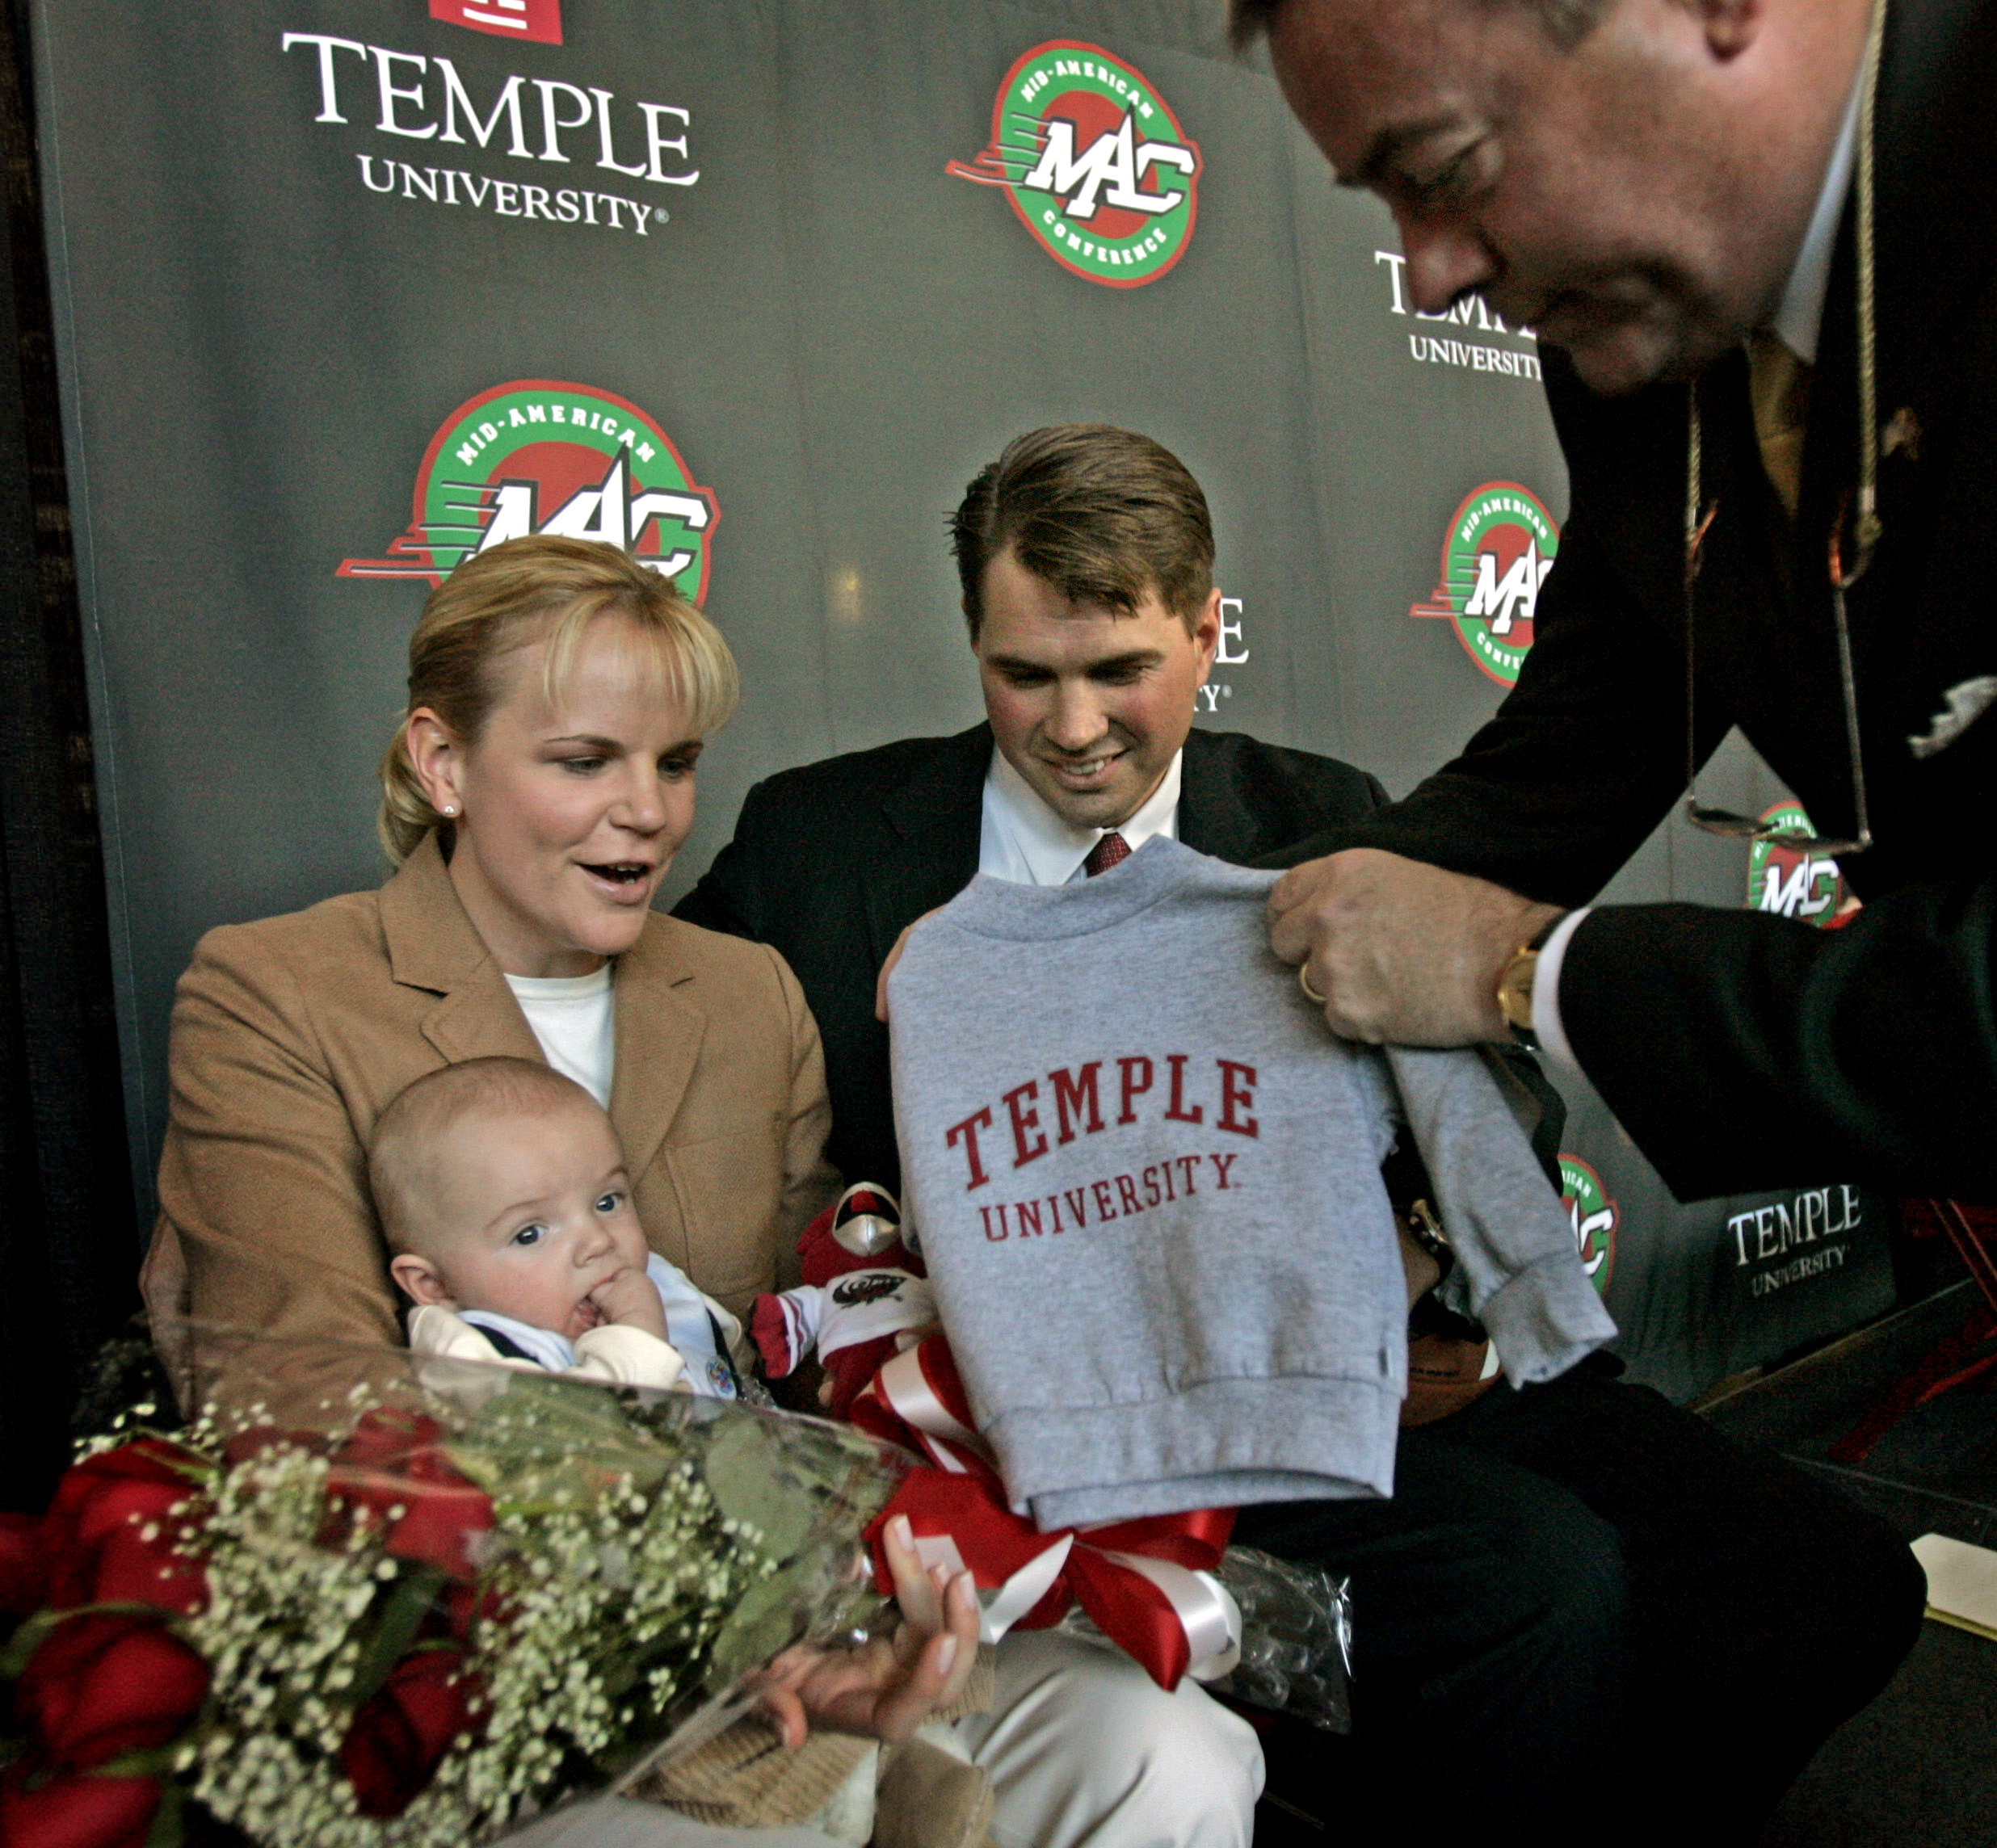 Temple AD Bill Bradshaw (right) presents gifts to new coach Al Golden, wife Kelly Elizabeth Hanna and their baby son, AJ, after Golden´s introductory press conference in December 2005.